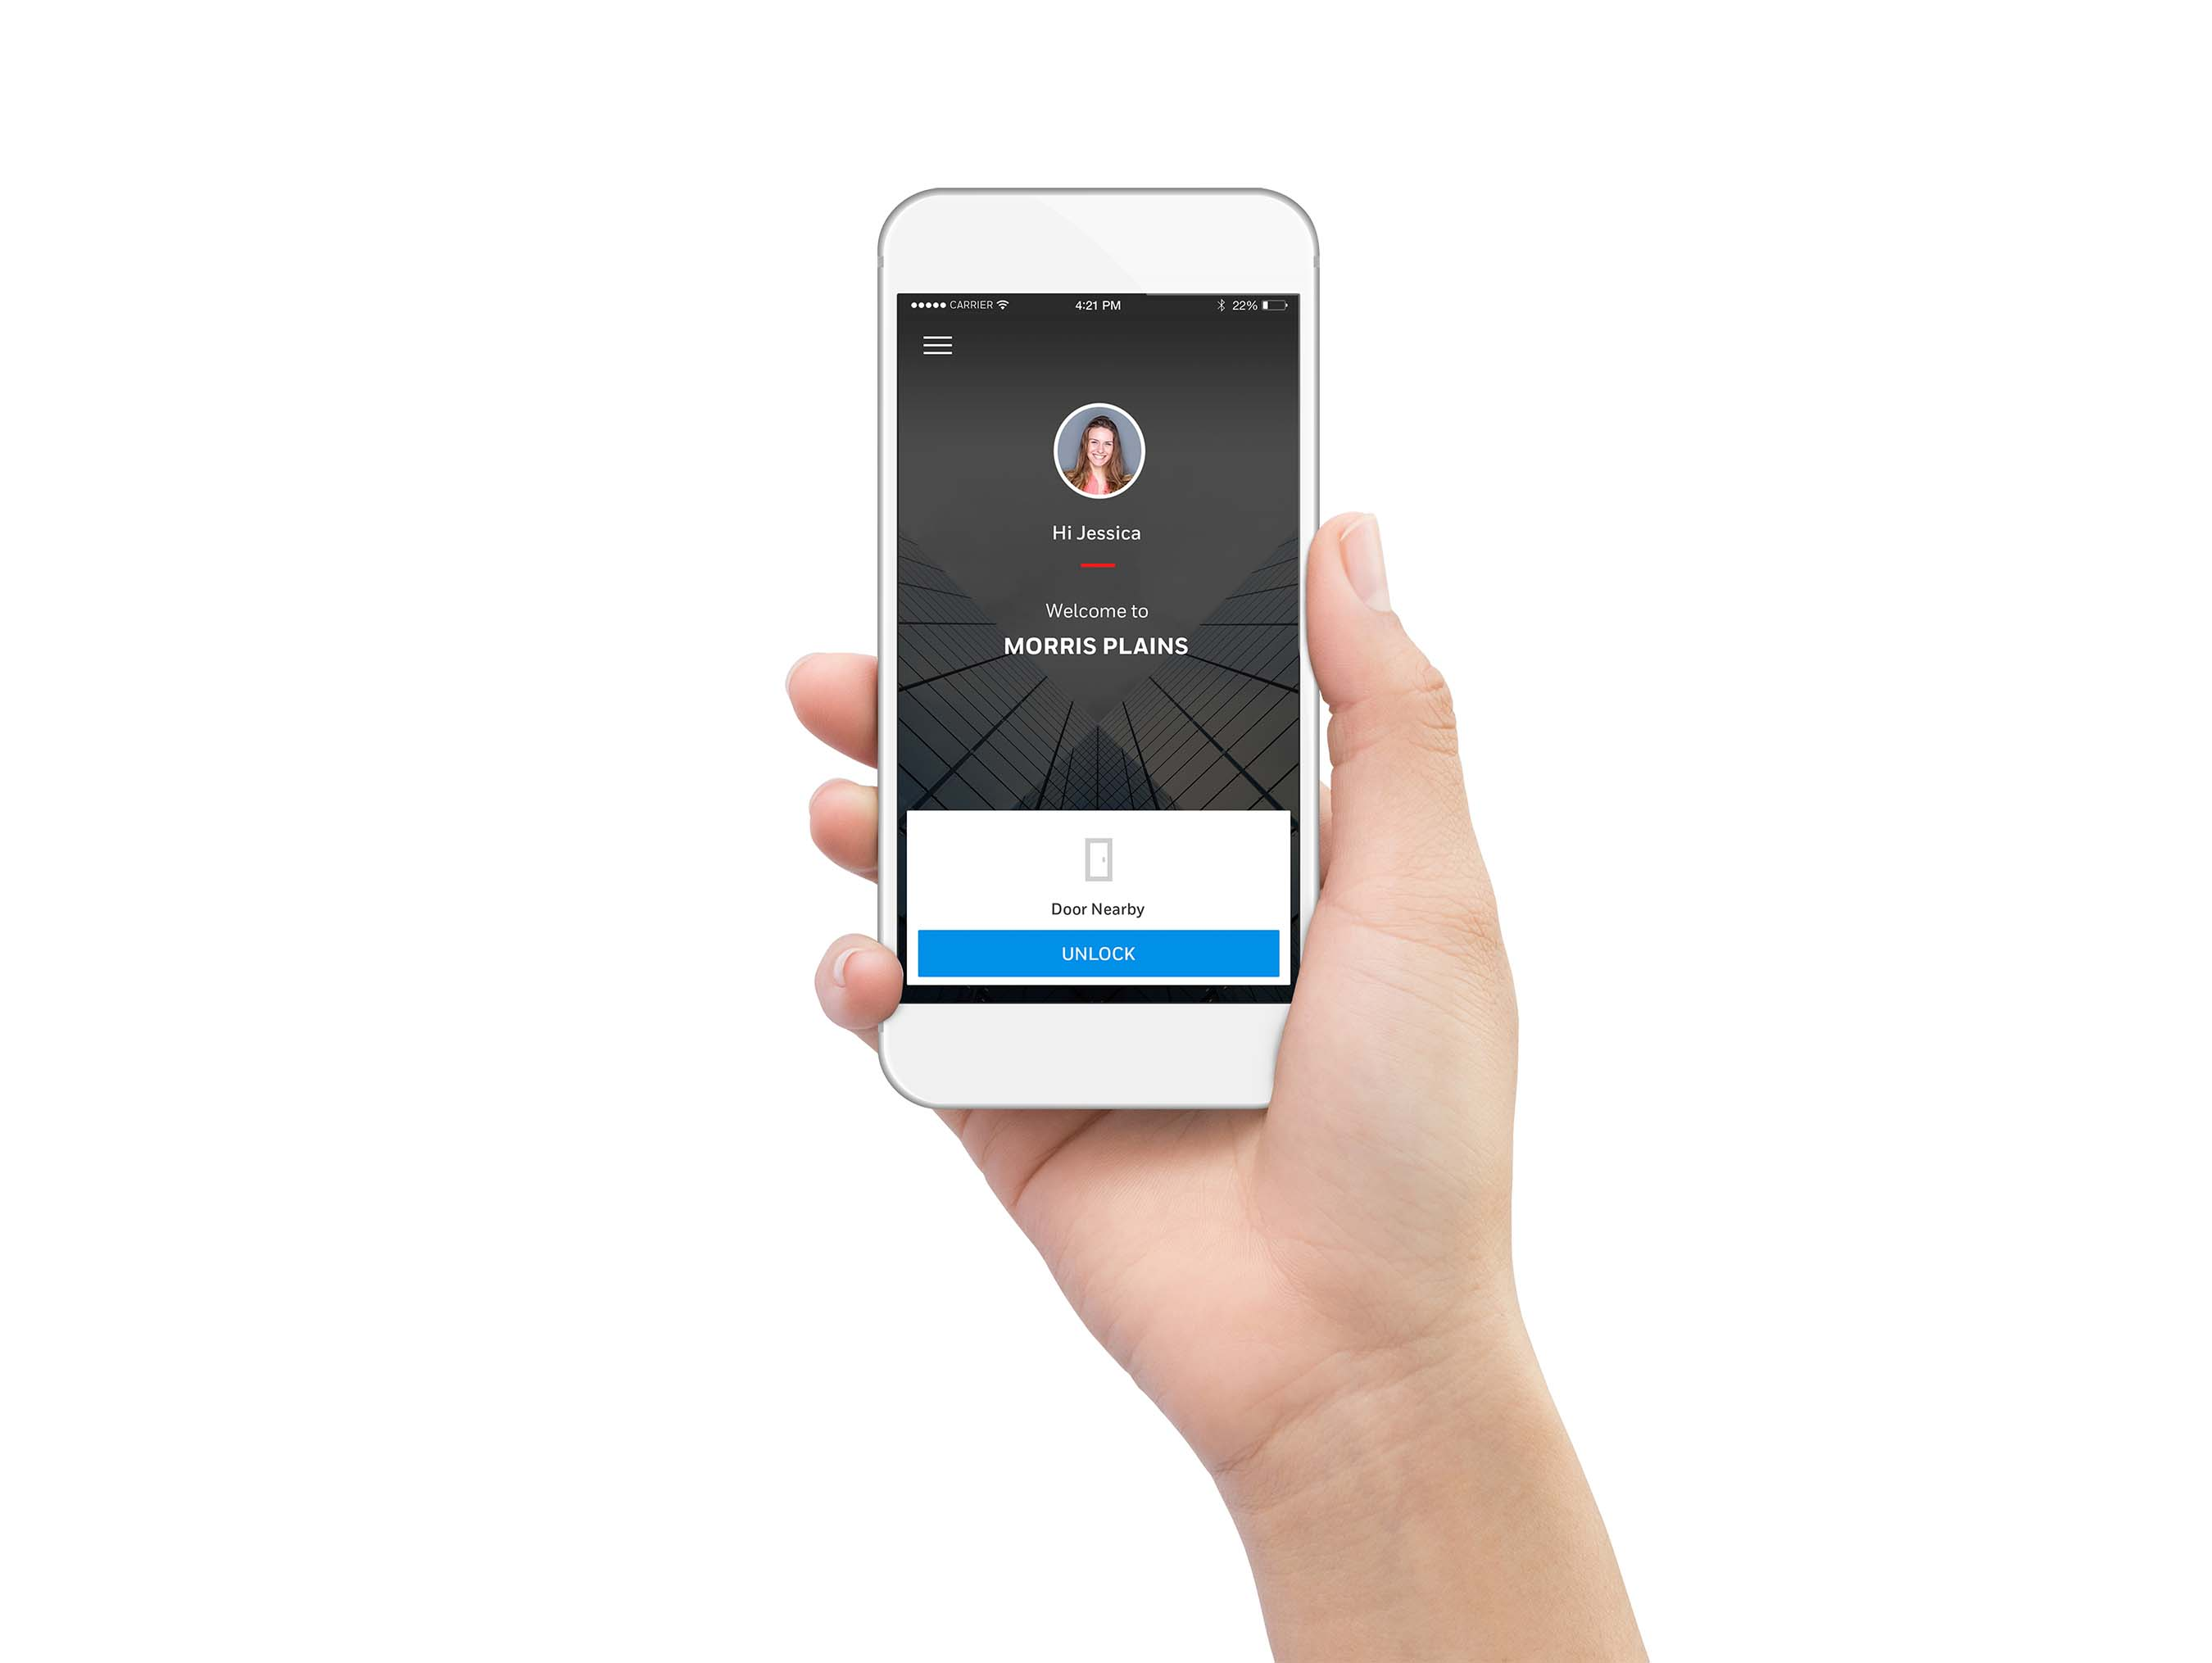 Honeywell Vector Occupant App eliminates the need for plastic badges or temporary tags. It offers a mobile-based access control for a facility without needing to track or replace lost cards or fobs.